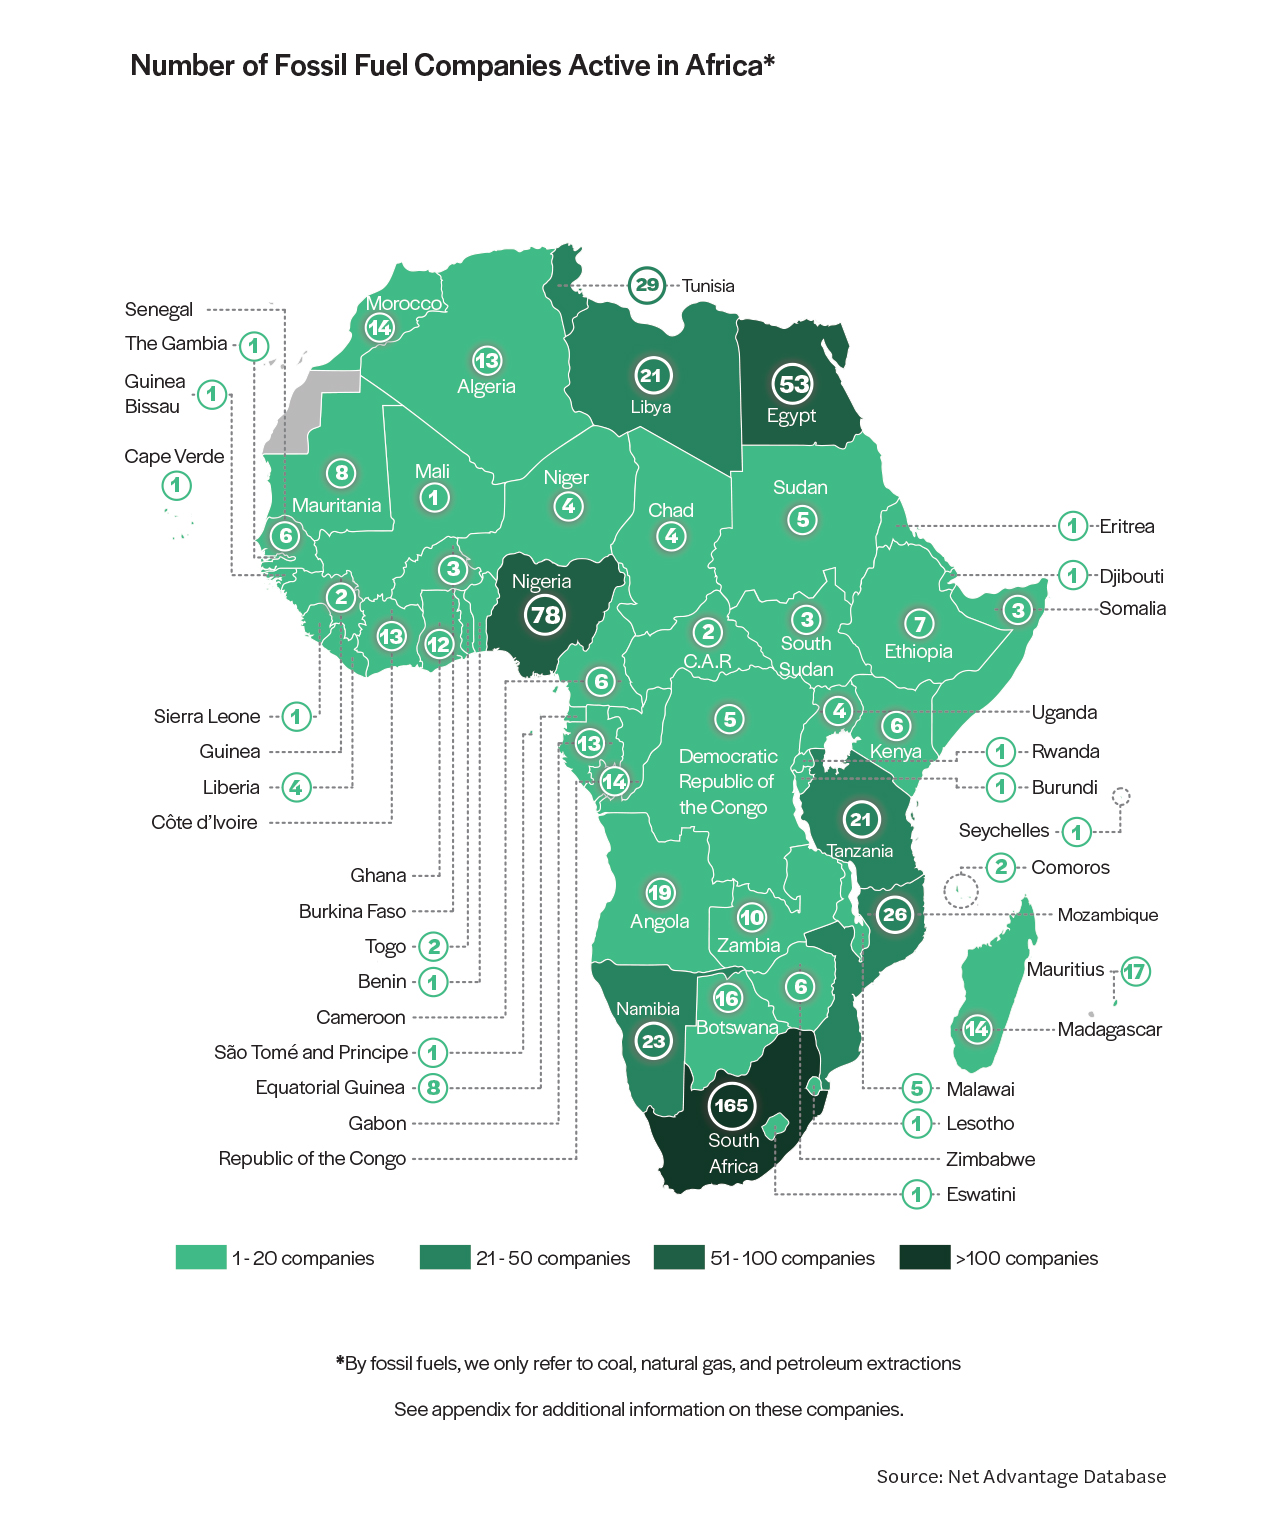 An infographic shows the number of fossil fuel companies active in Africa